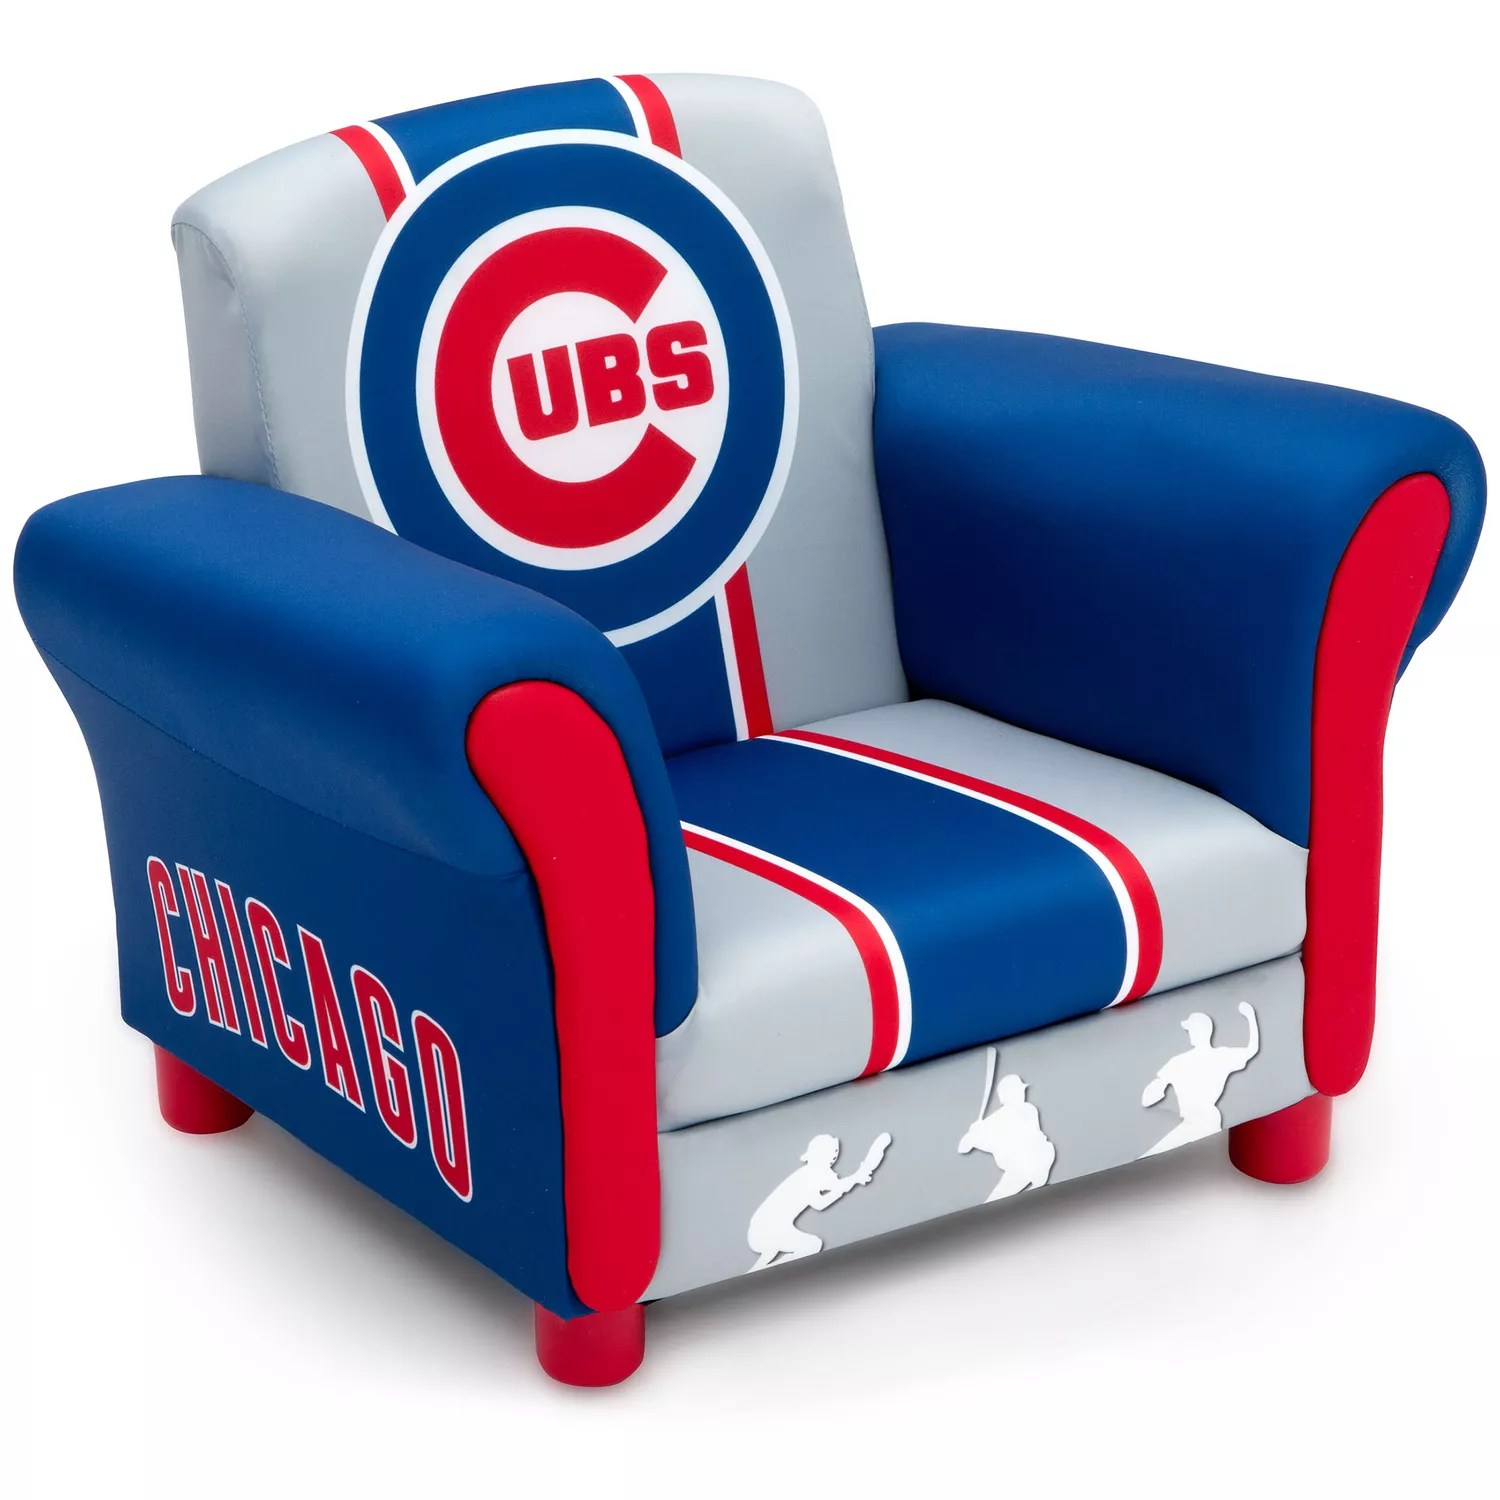 childrens upholstered chairs prima pappa high chair delta children chicago cubs kids arm